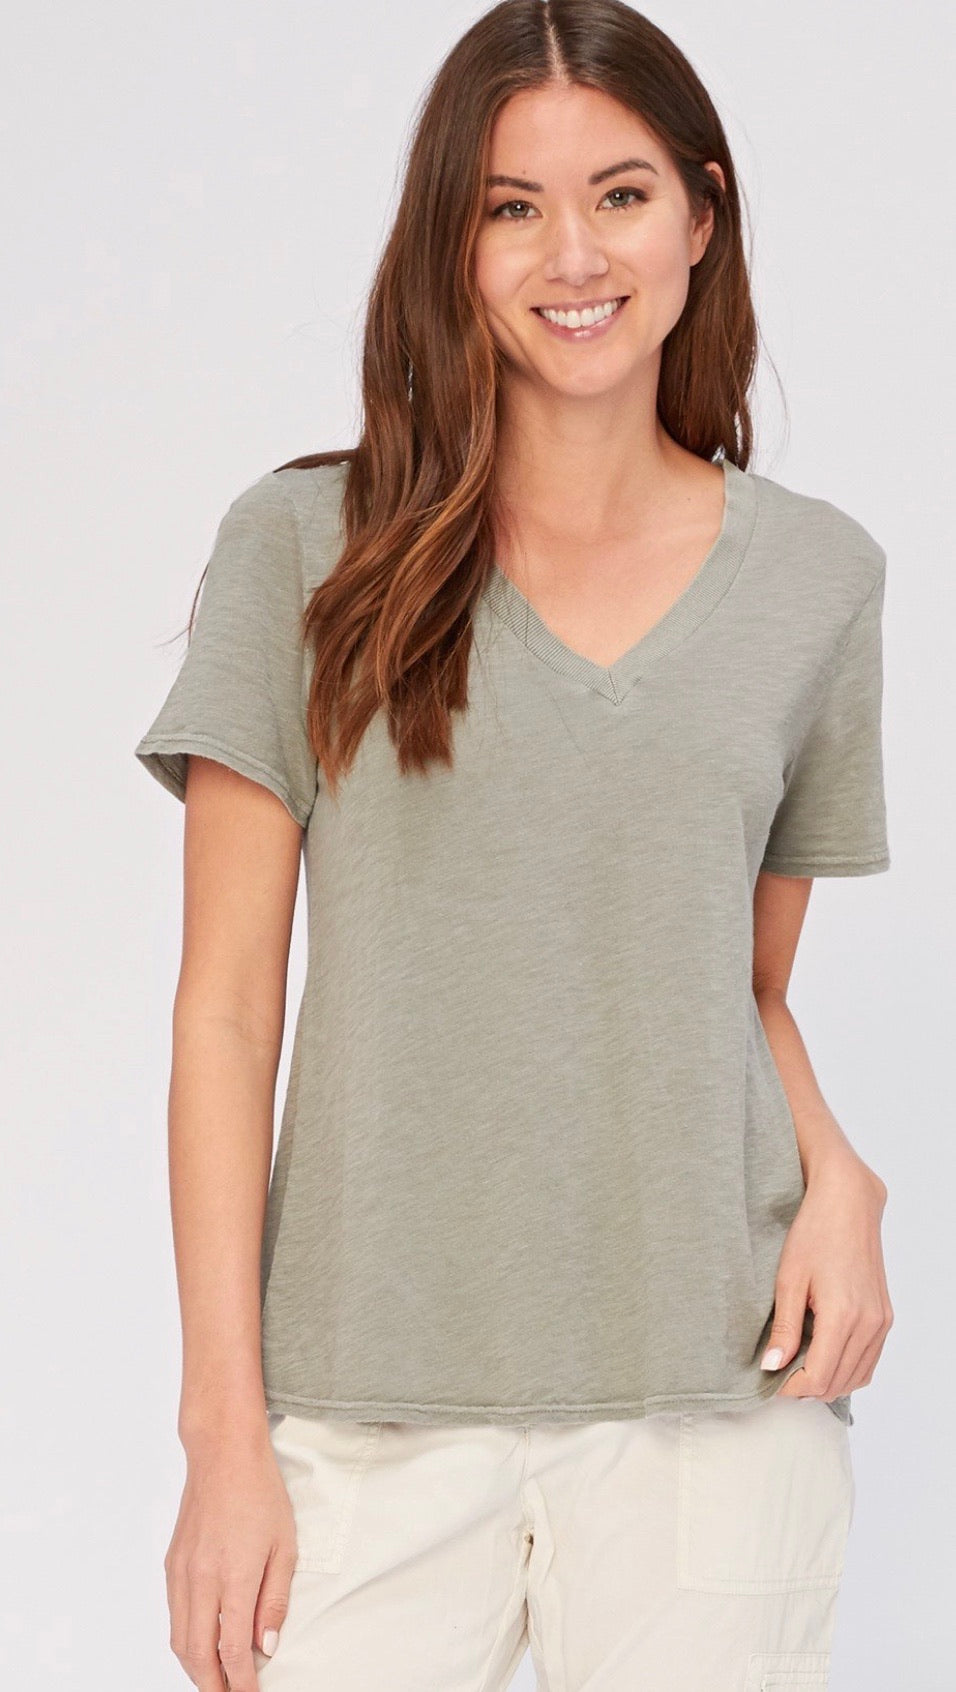 WEAR 13828 MAXWELL TEE- scenic route